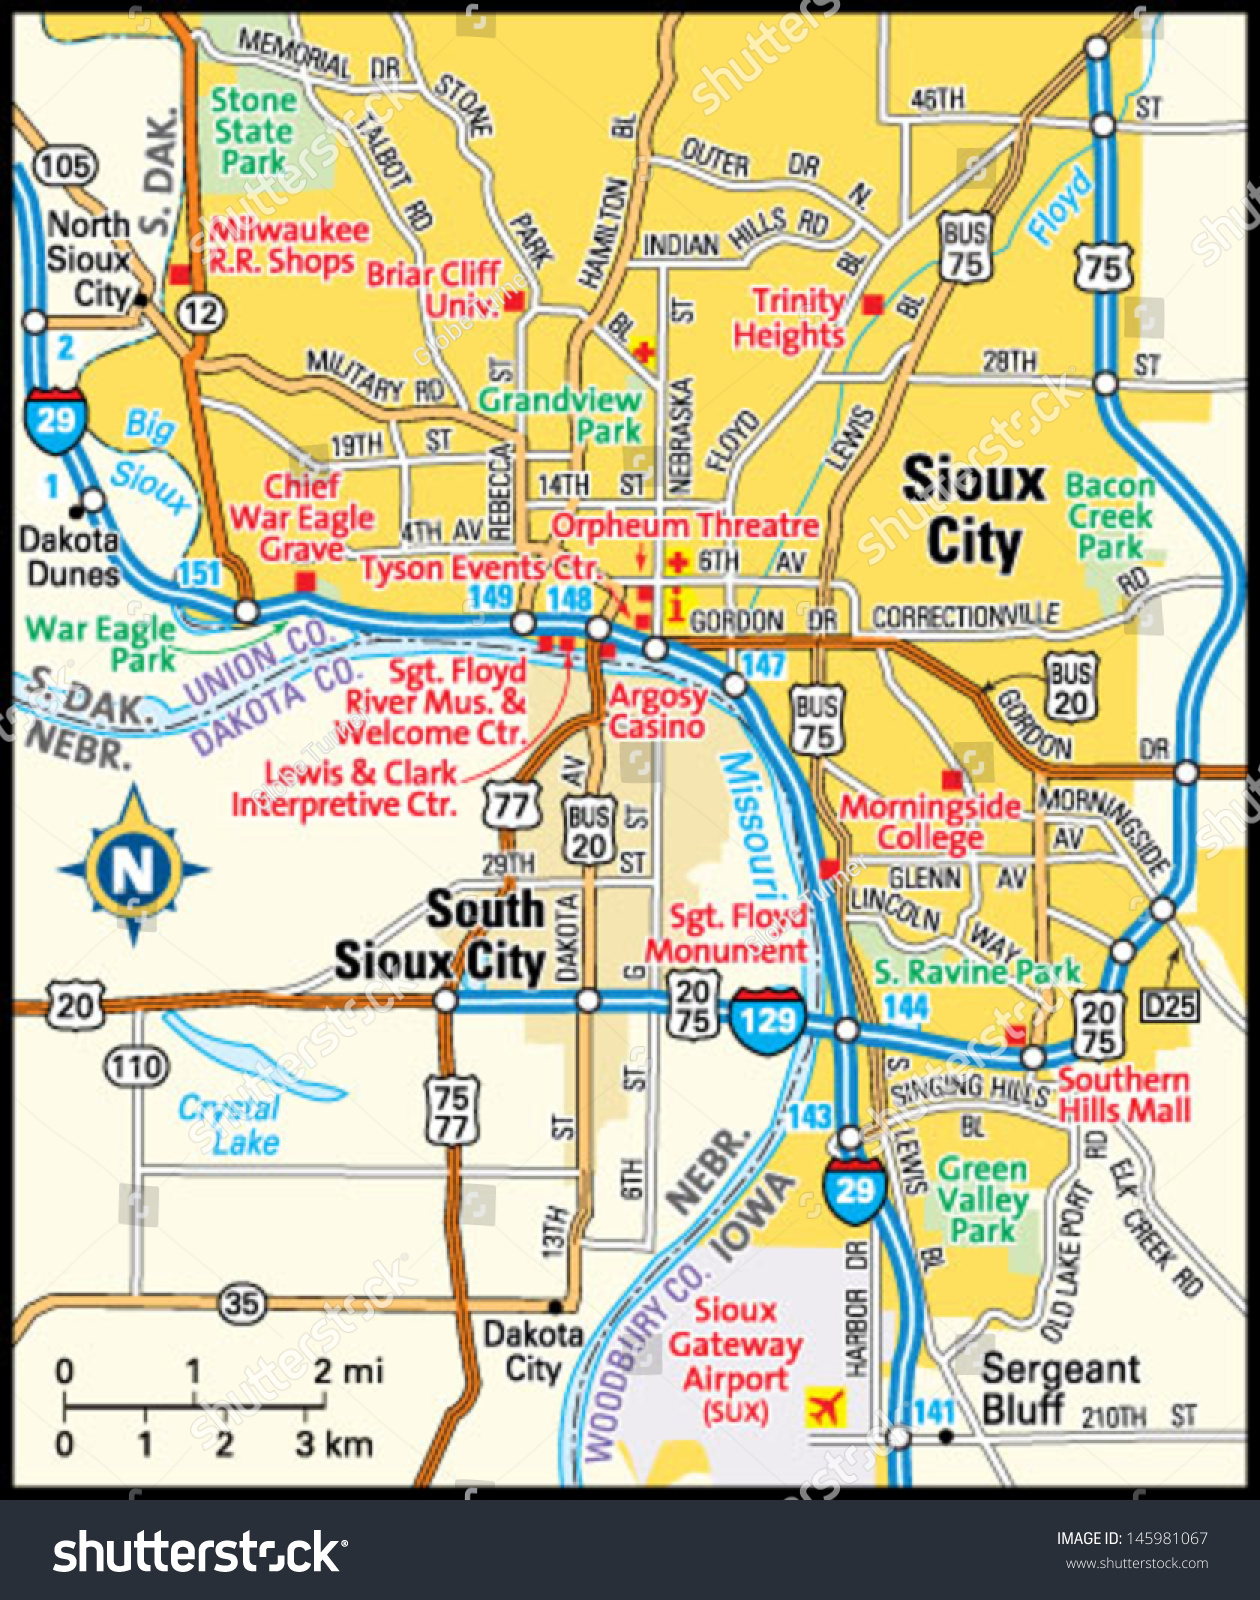 Sioux City Iowa Area Map Stock Vector Royalty Free 145981067